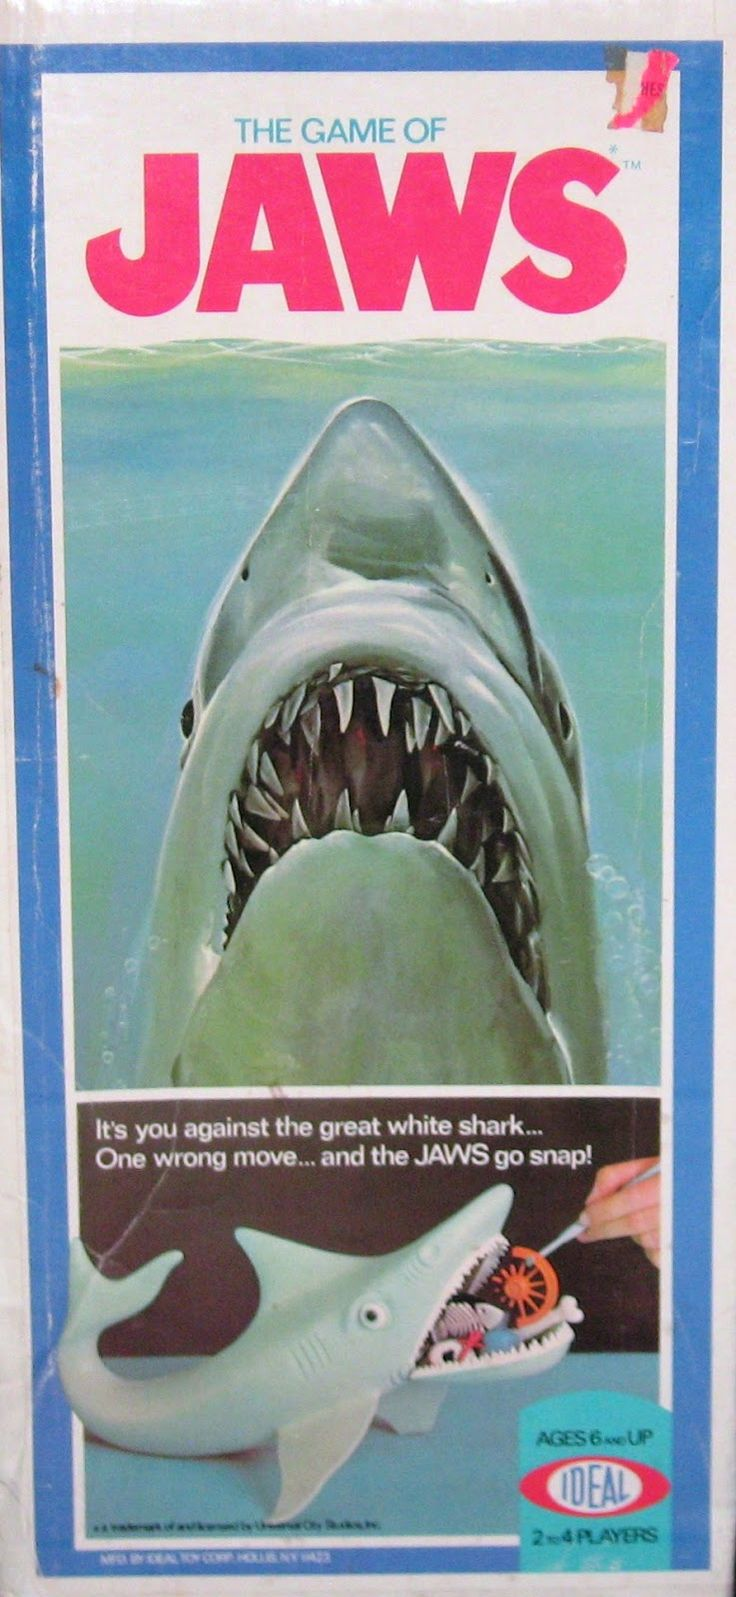 The Game of Jaws: It's you against the great white shark....